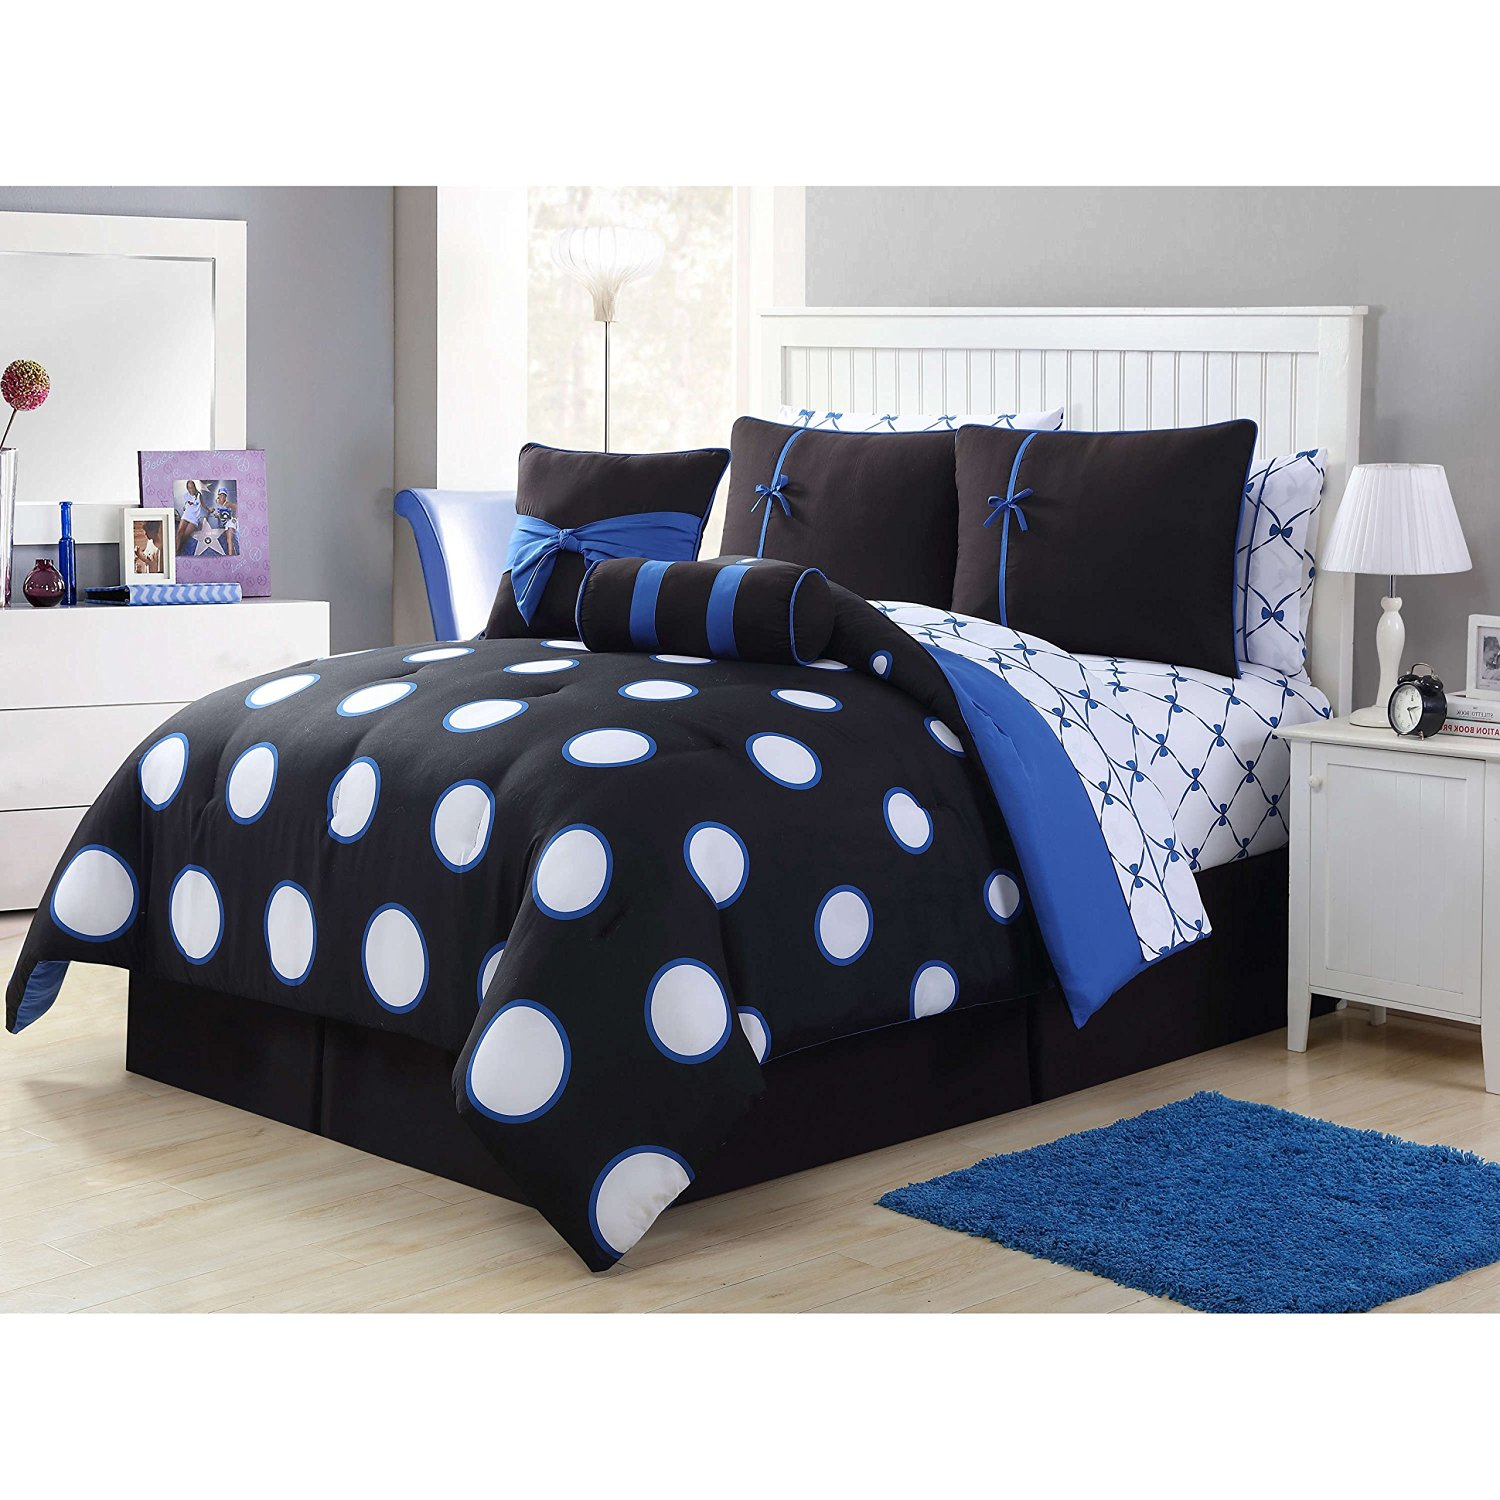 8 Piece Twin Black Blue Contemporary Bed In A Bag With Sheet Set For Teen Girls, High Class Bedding, Polyester Fabric, Polka Dot Pattern, Machine Washable, Dark Black, Medium Blue, White Dot